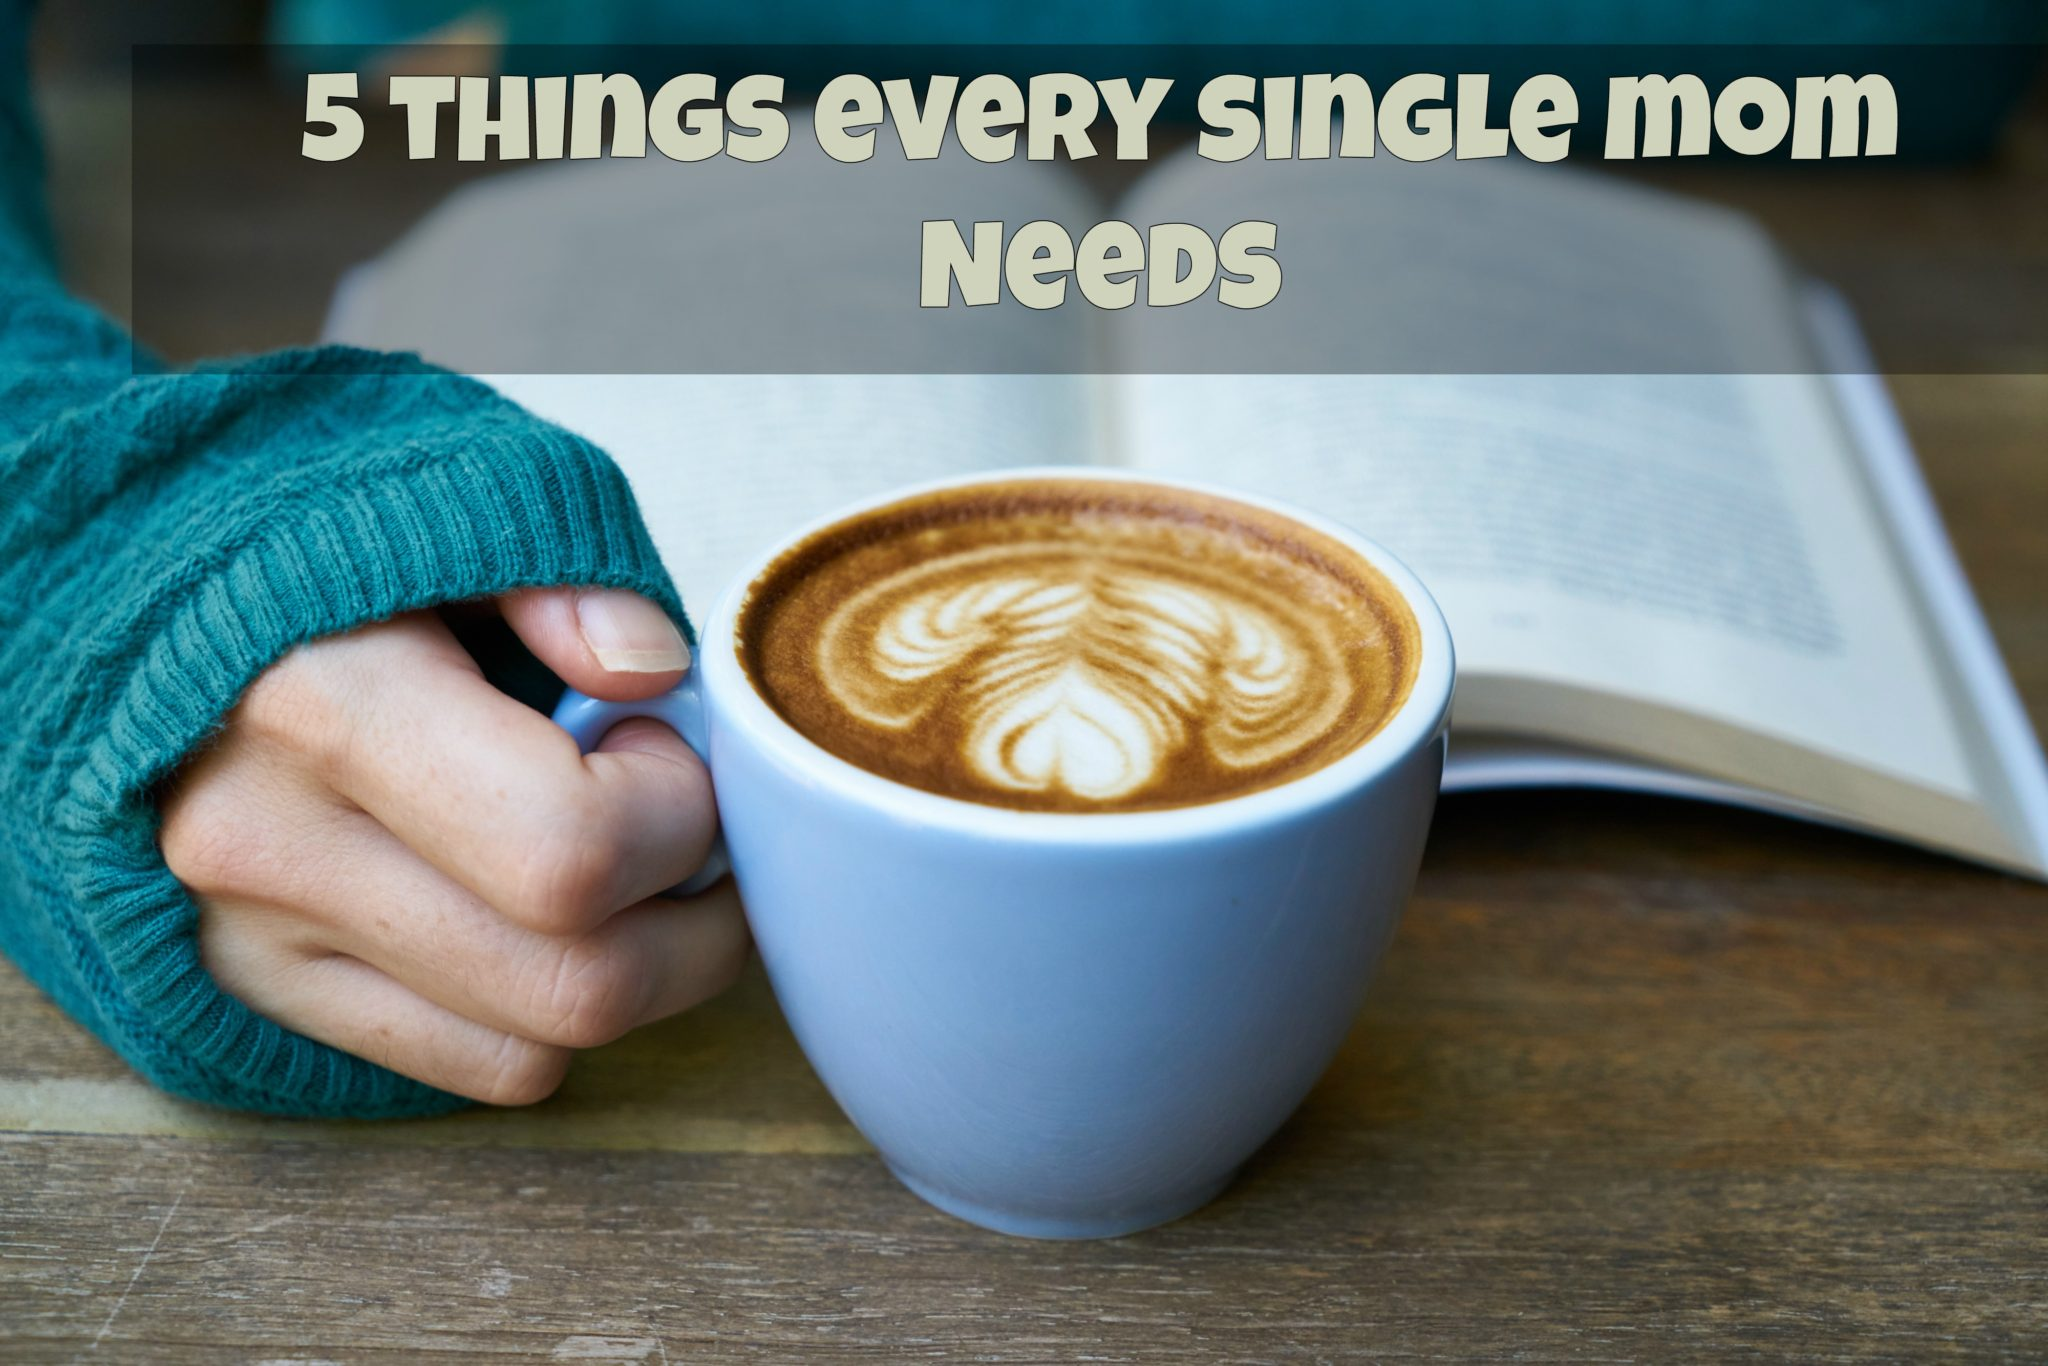 5 things single moms need